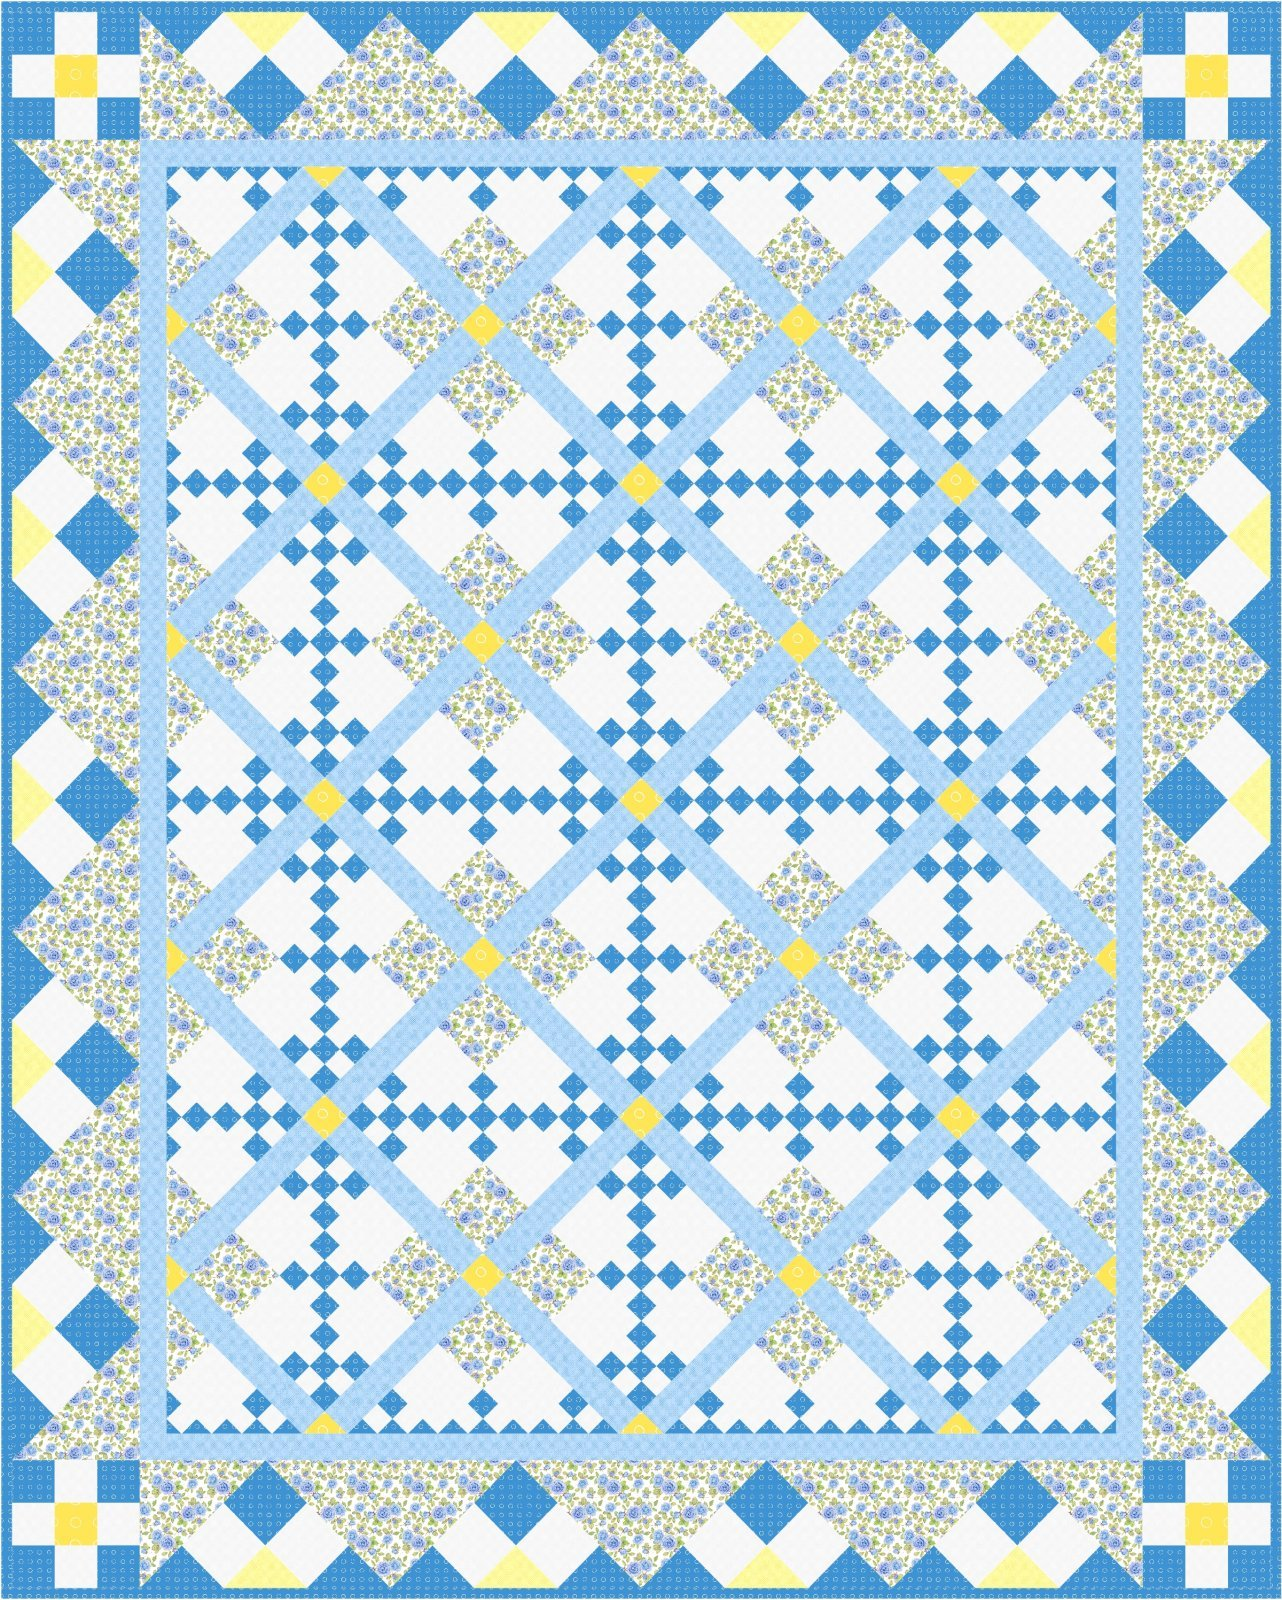 Happy Days Quilt Pattern by Morning Glory Designs